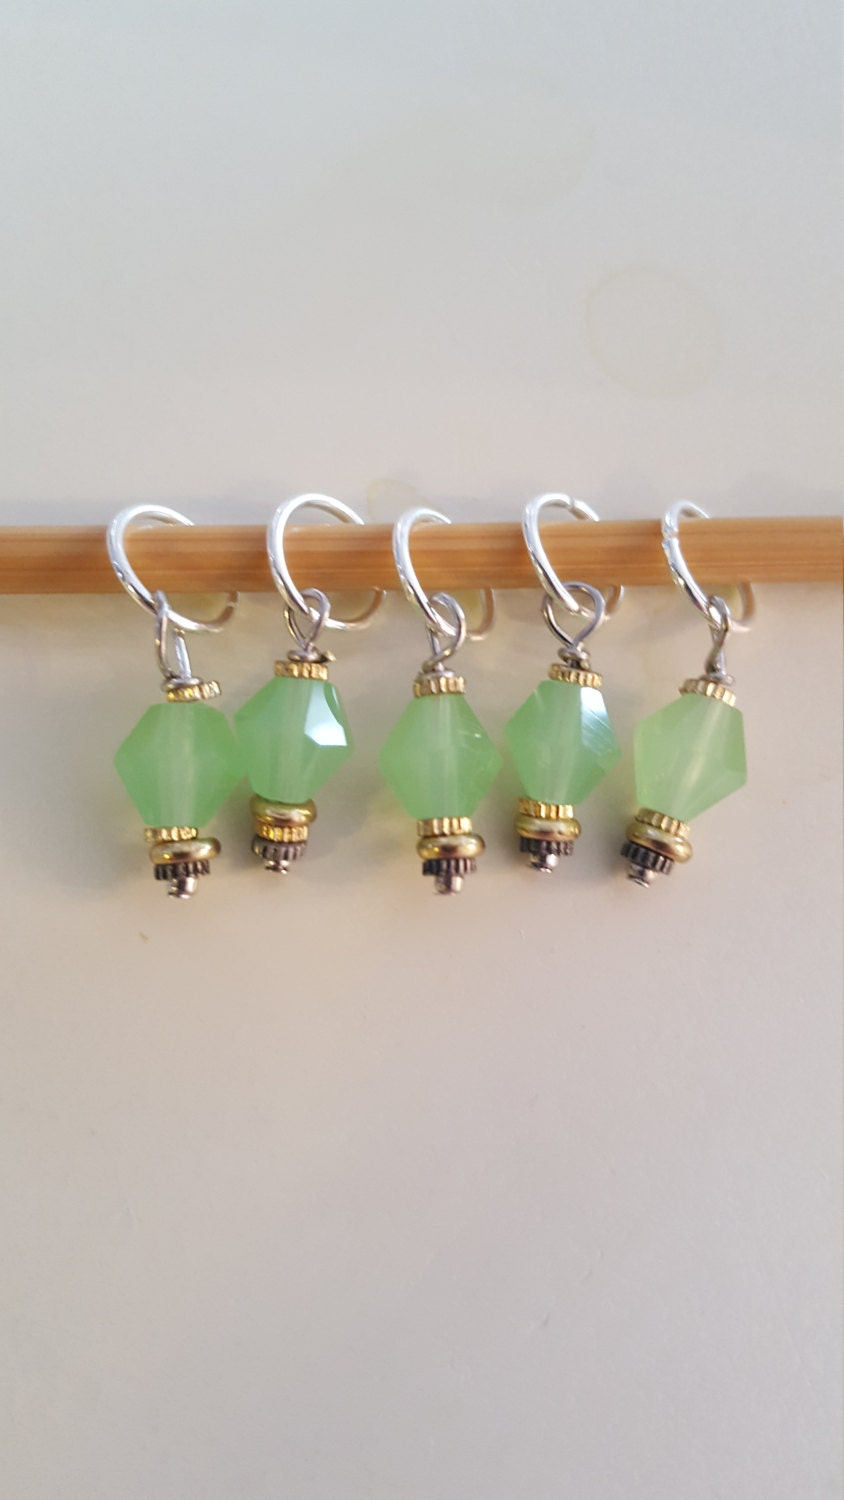 Knitting Markers Etsy : Green knitting stitch markers from evidentlymotley on etsy